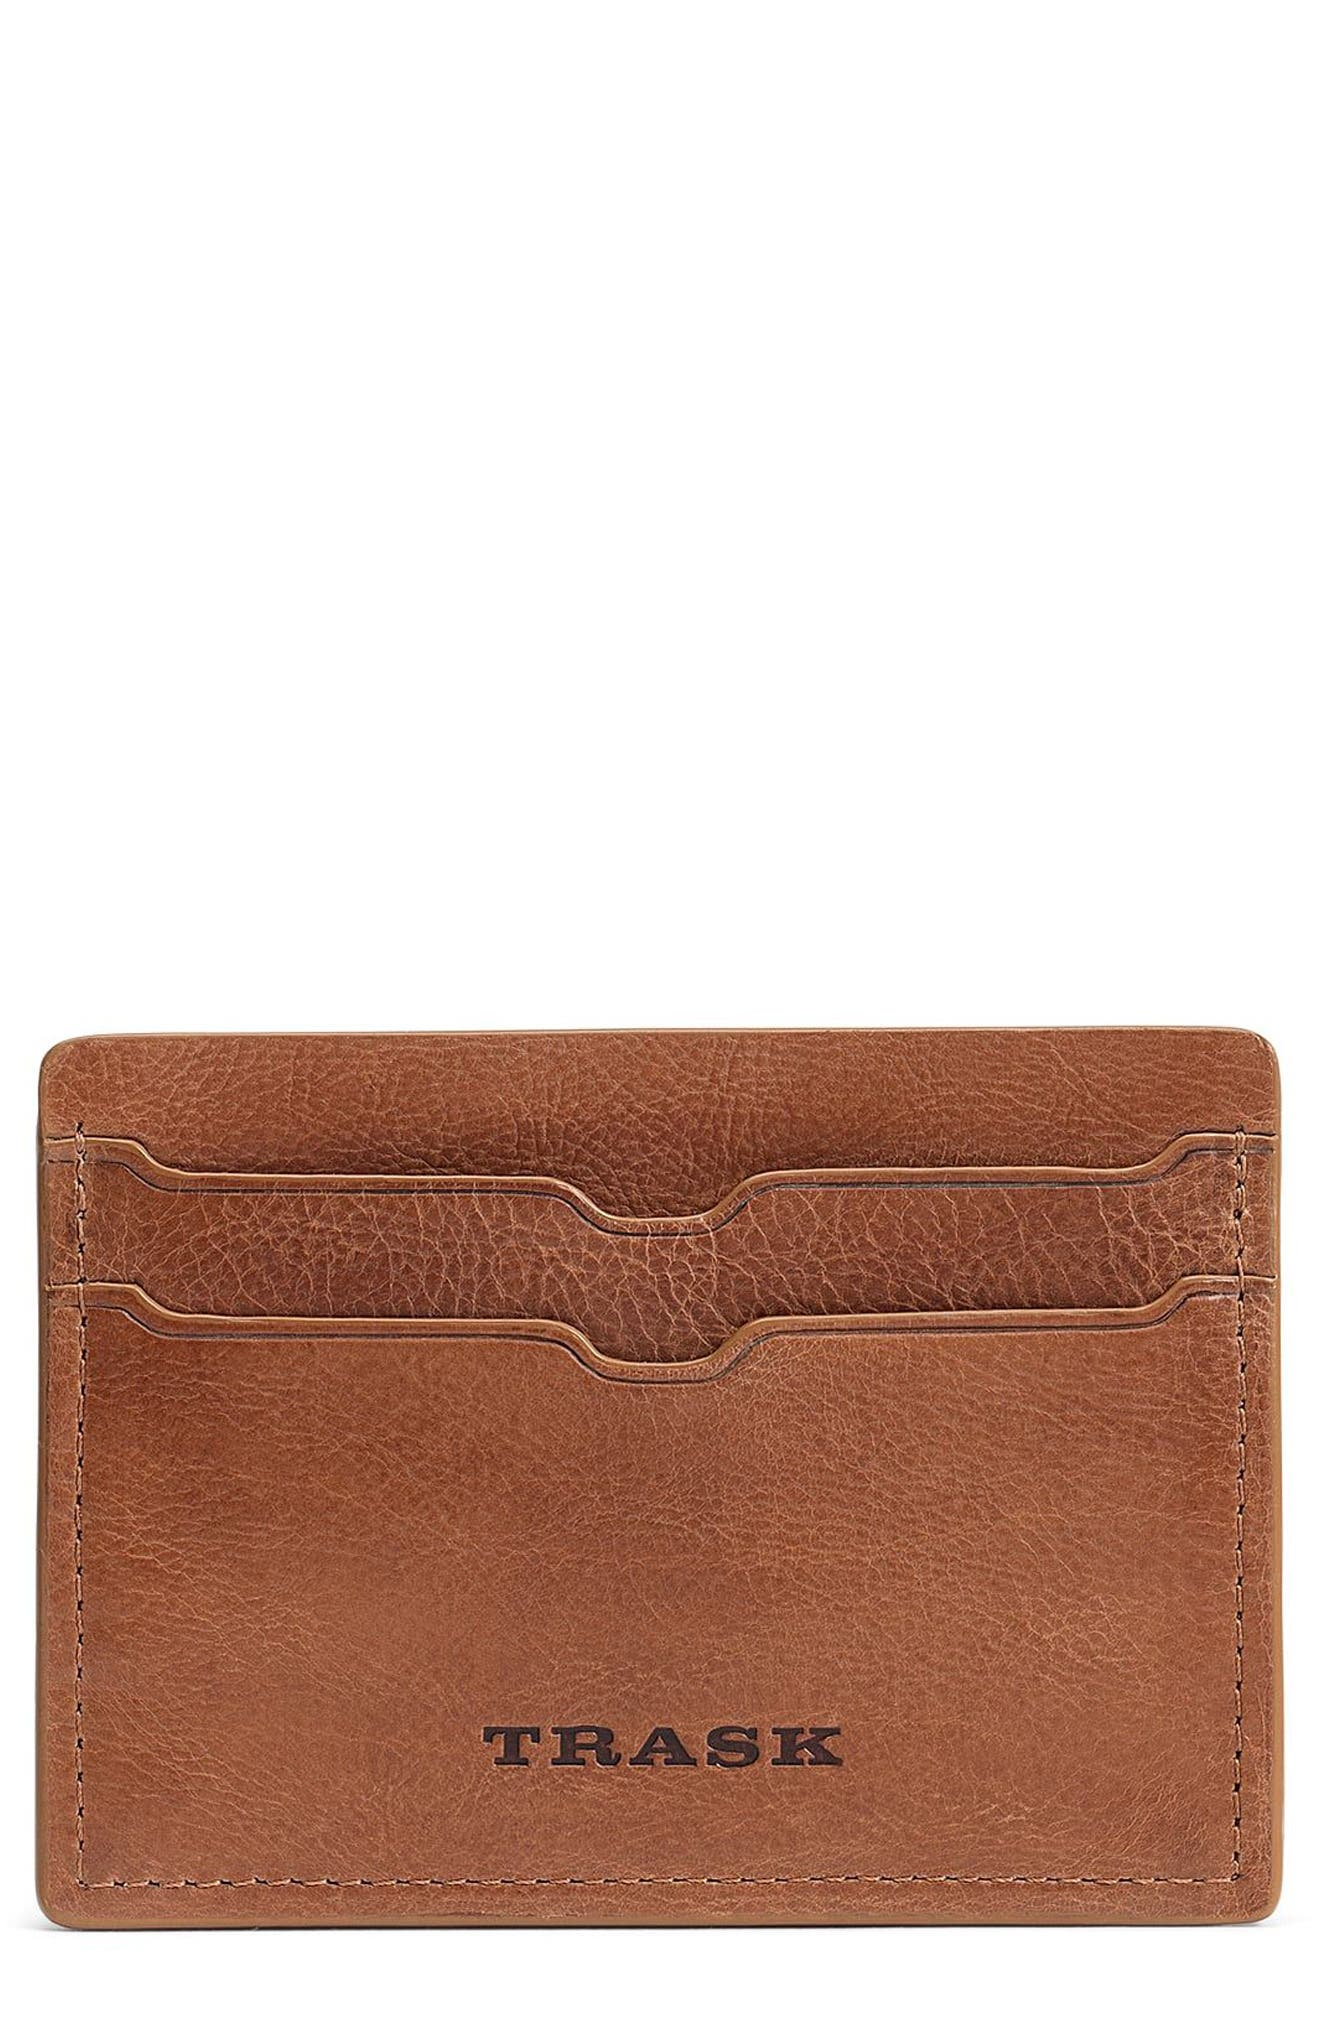 Canyon Leather Card Case,                             Main thumbnail 1, color,                             Tan